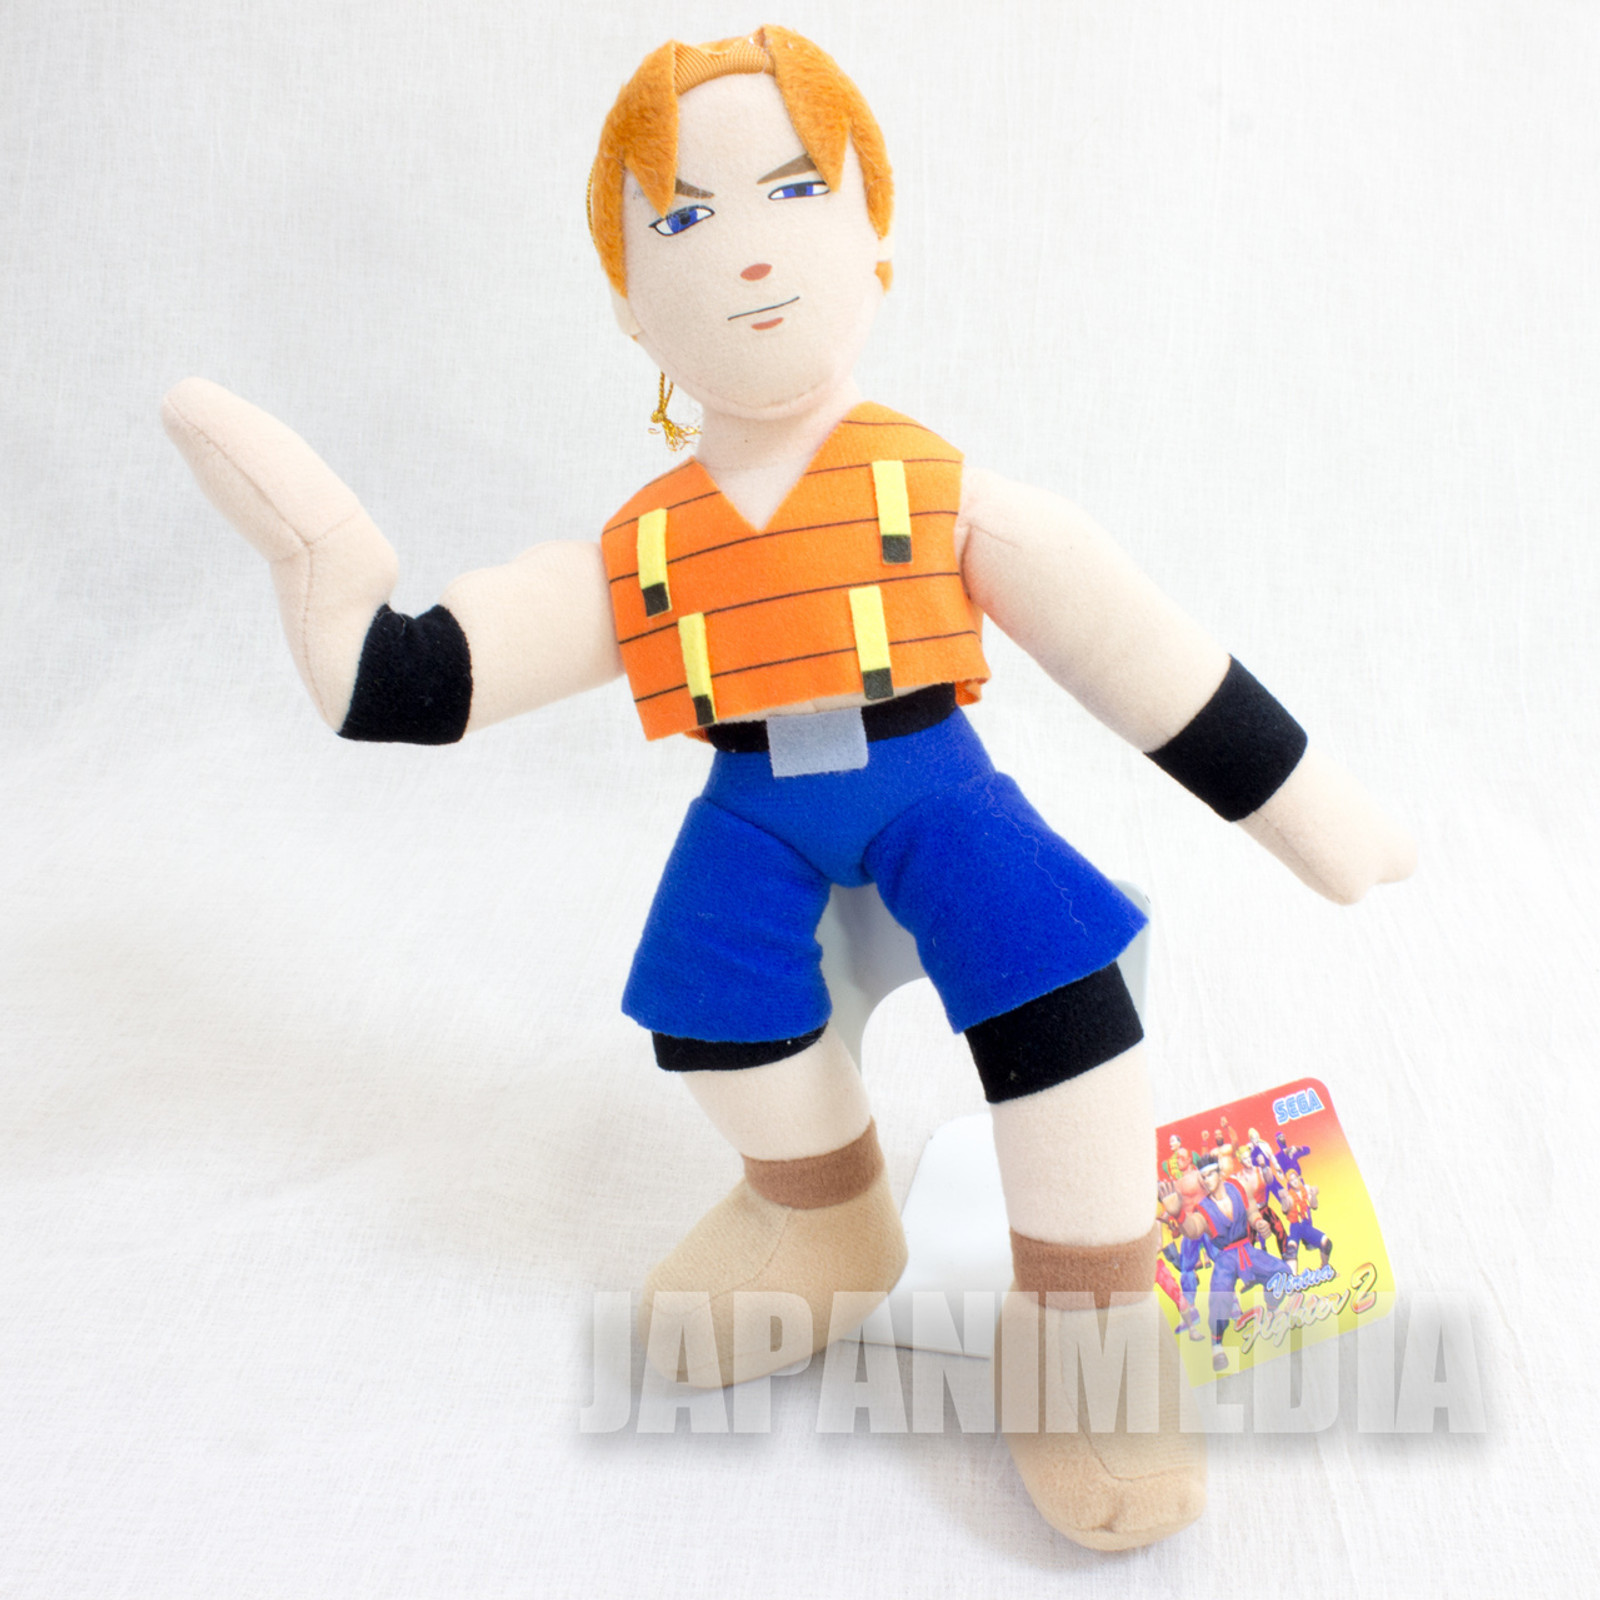 "Virtua Fighter 2 Lion Rafale 10"" Plush Doll SEGA 1994 JAPAN GAME FIGURE"